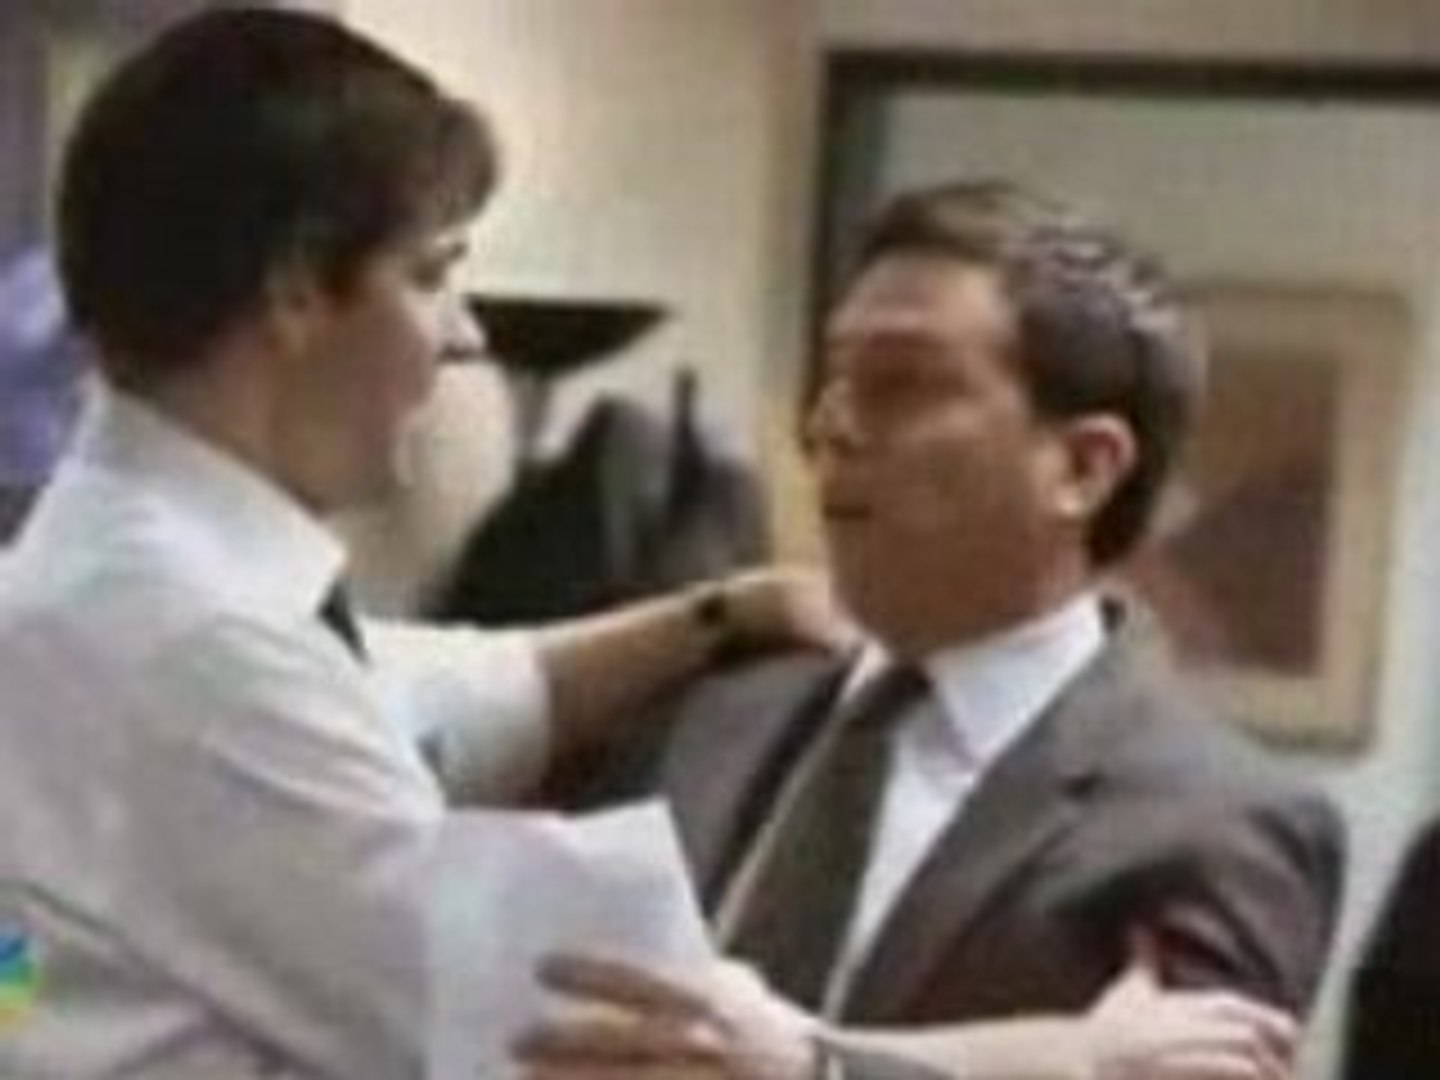 The Office Behind the Scenes Promo